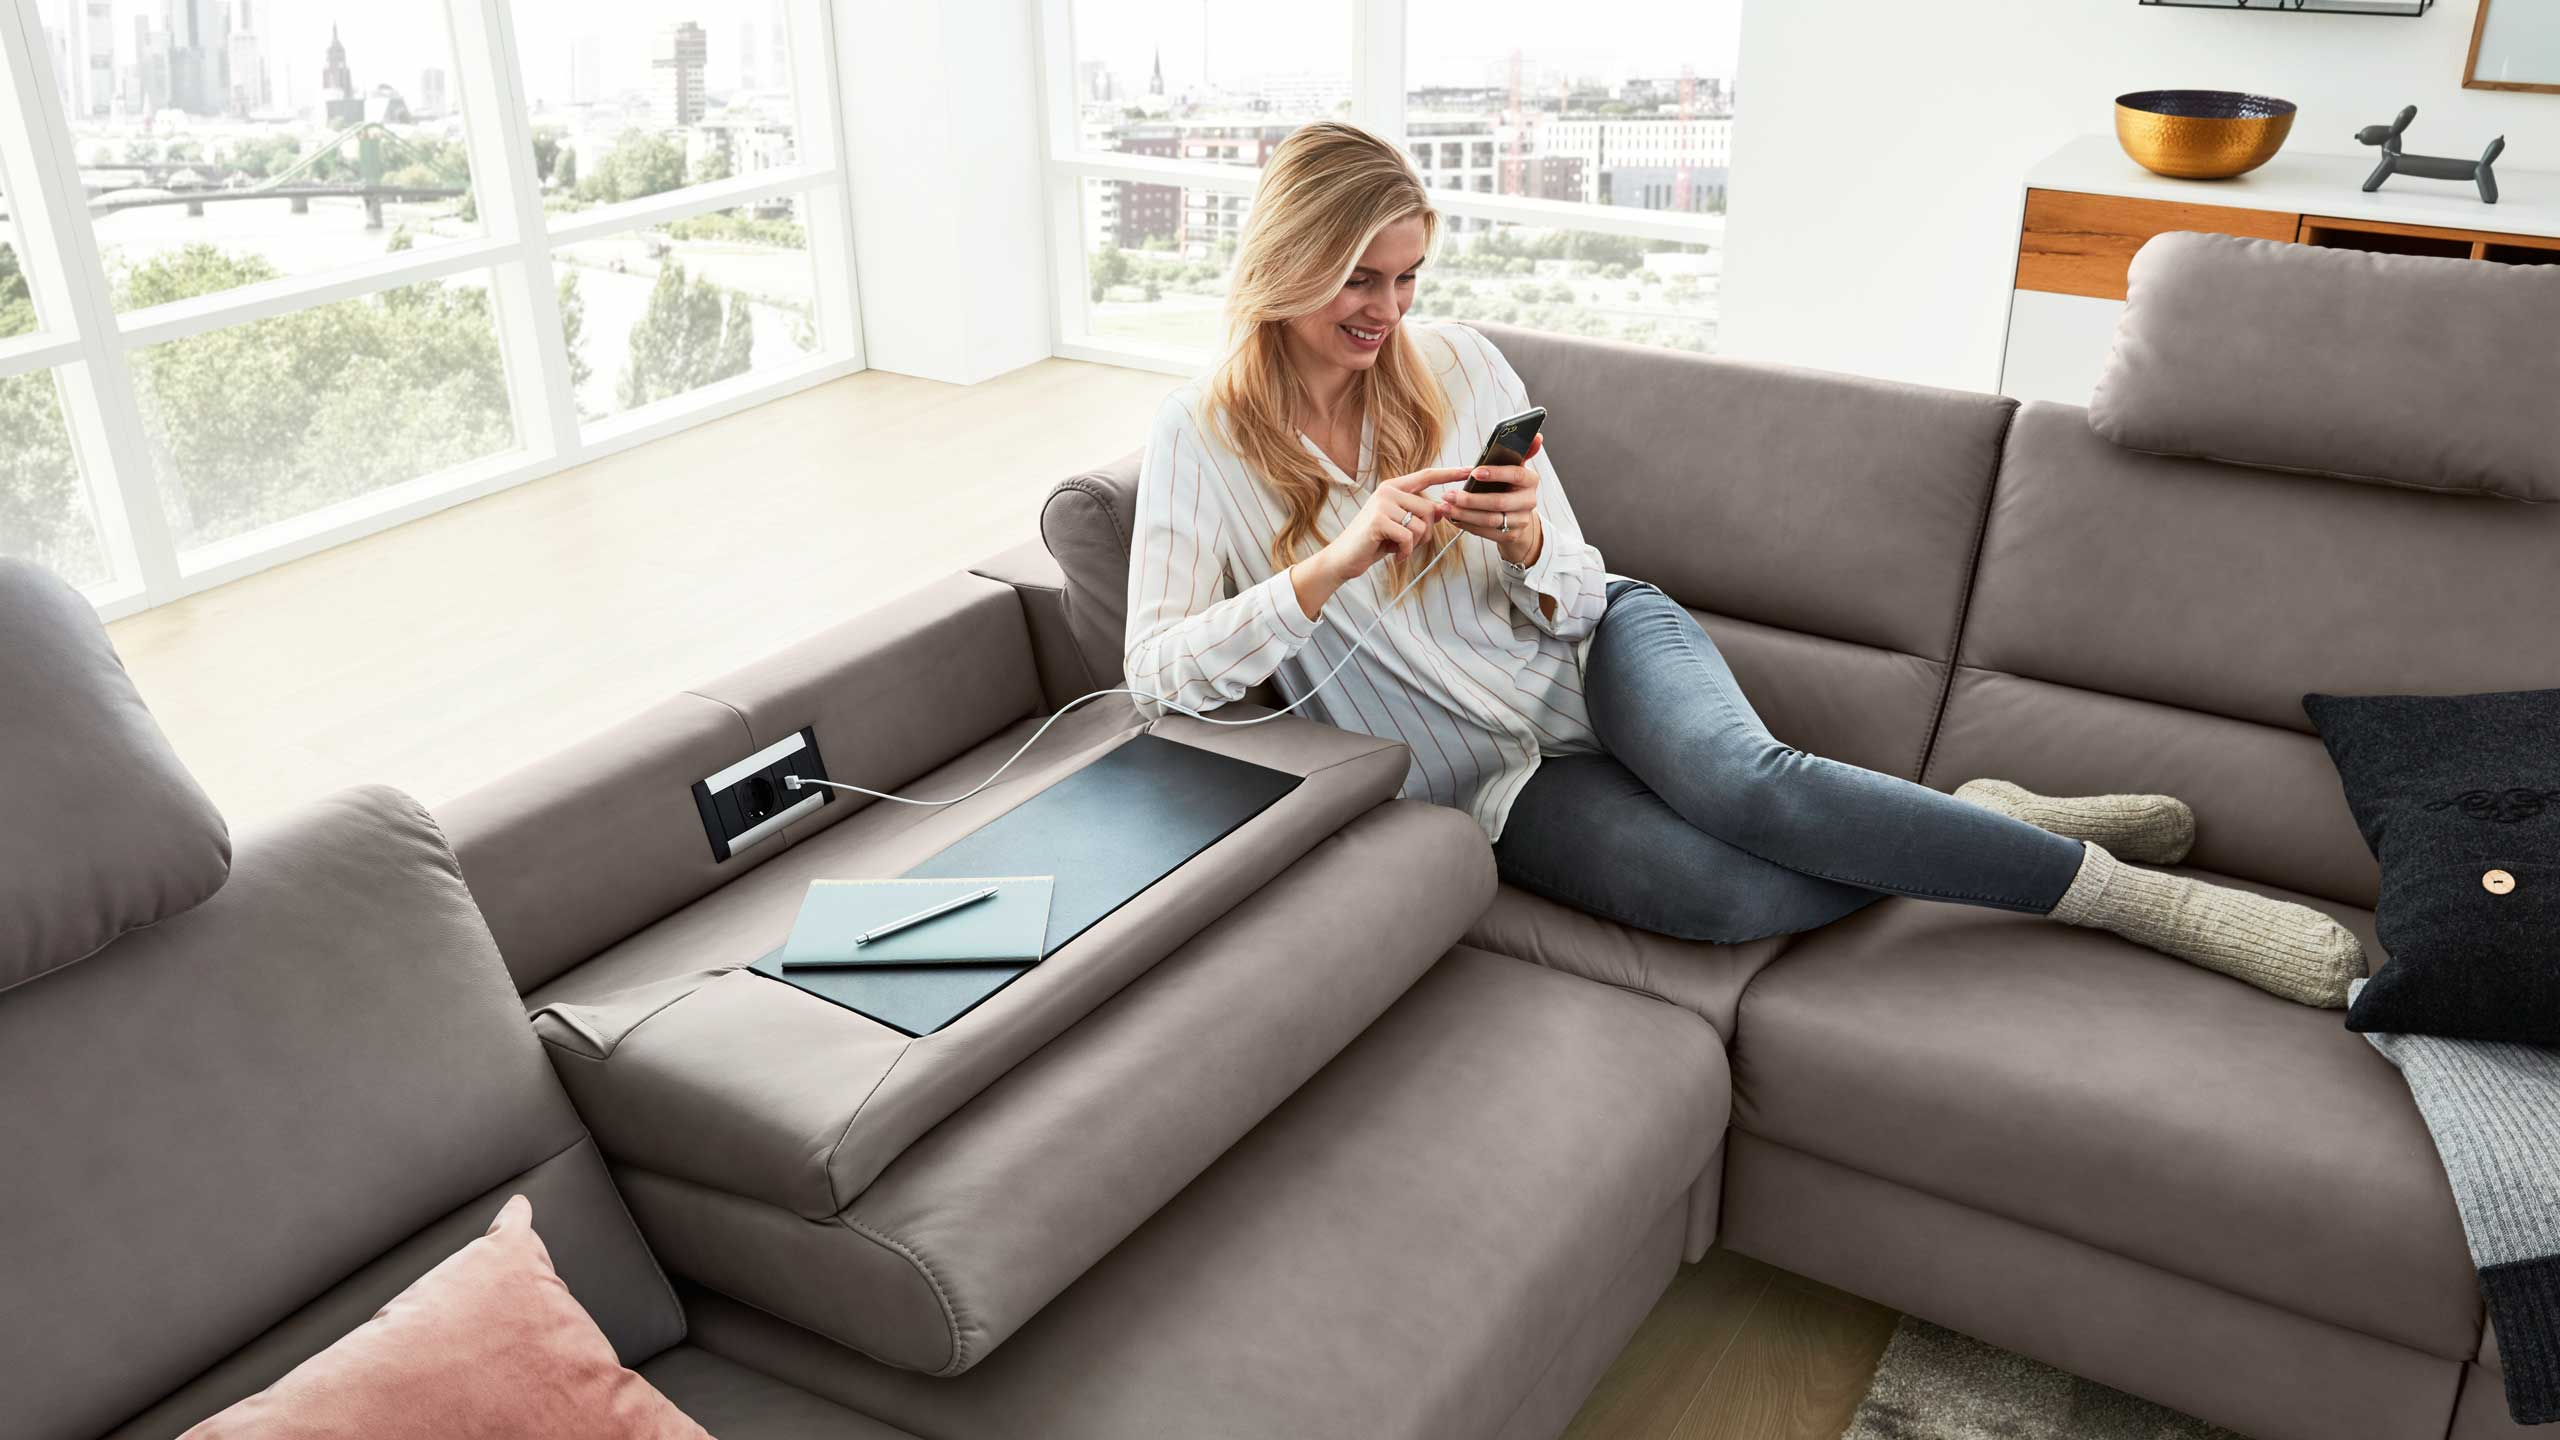 Interliving Sofa Serie 4305 mit Wallaway Funktion